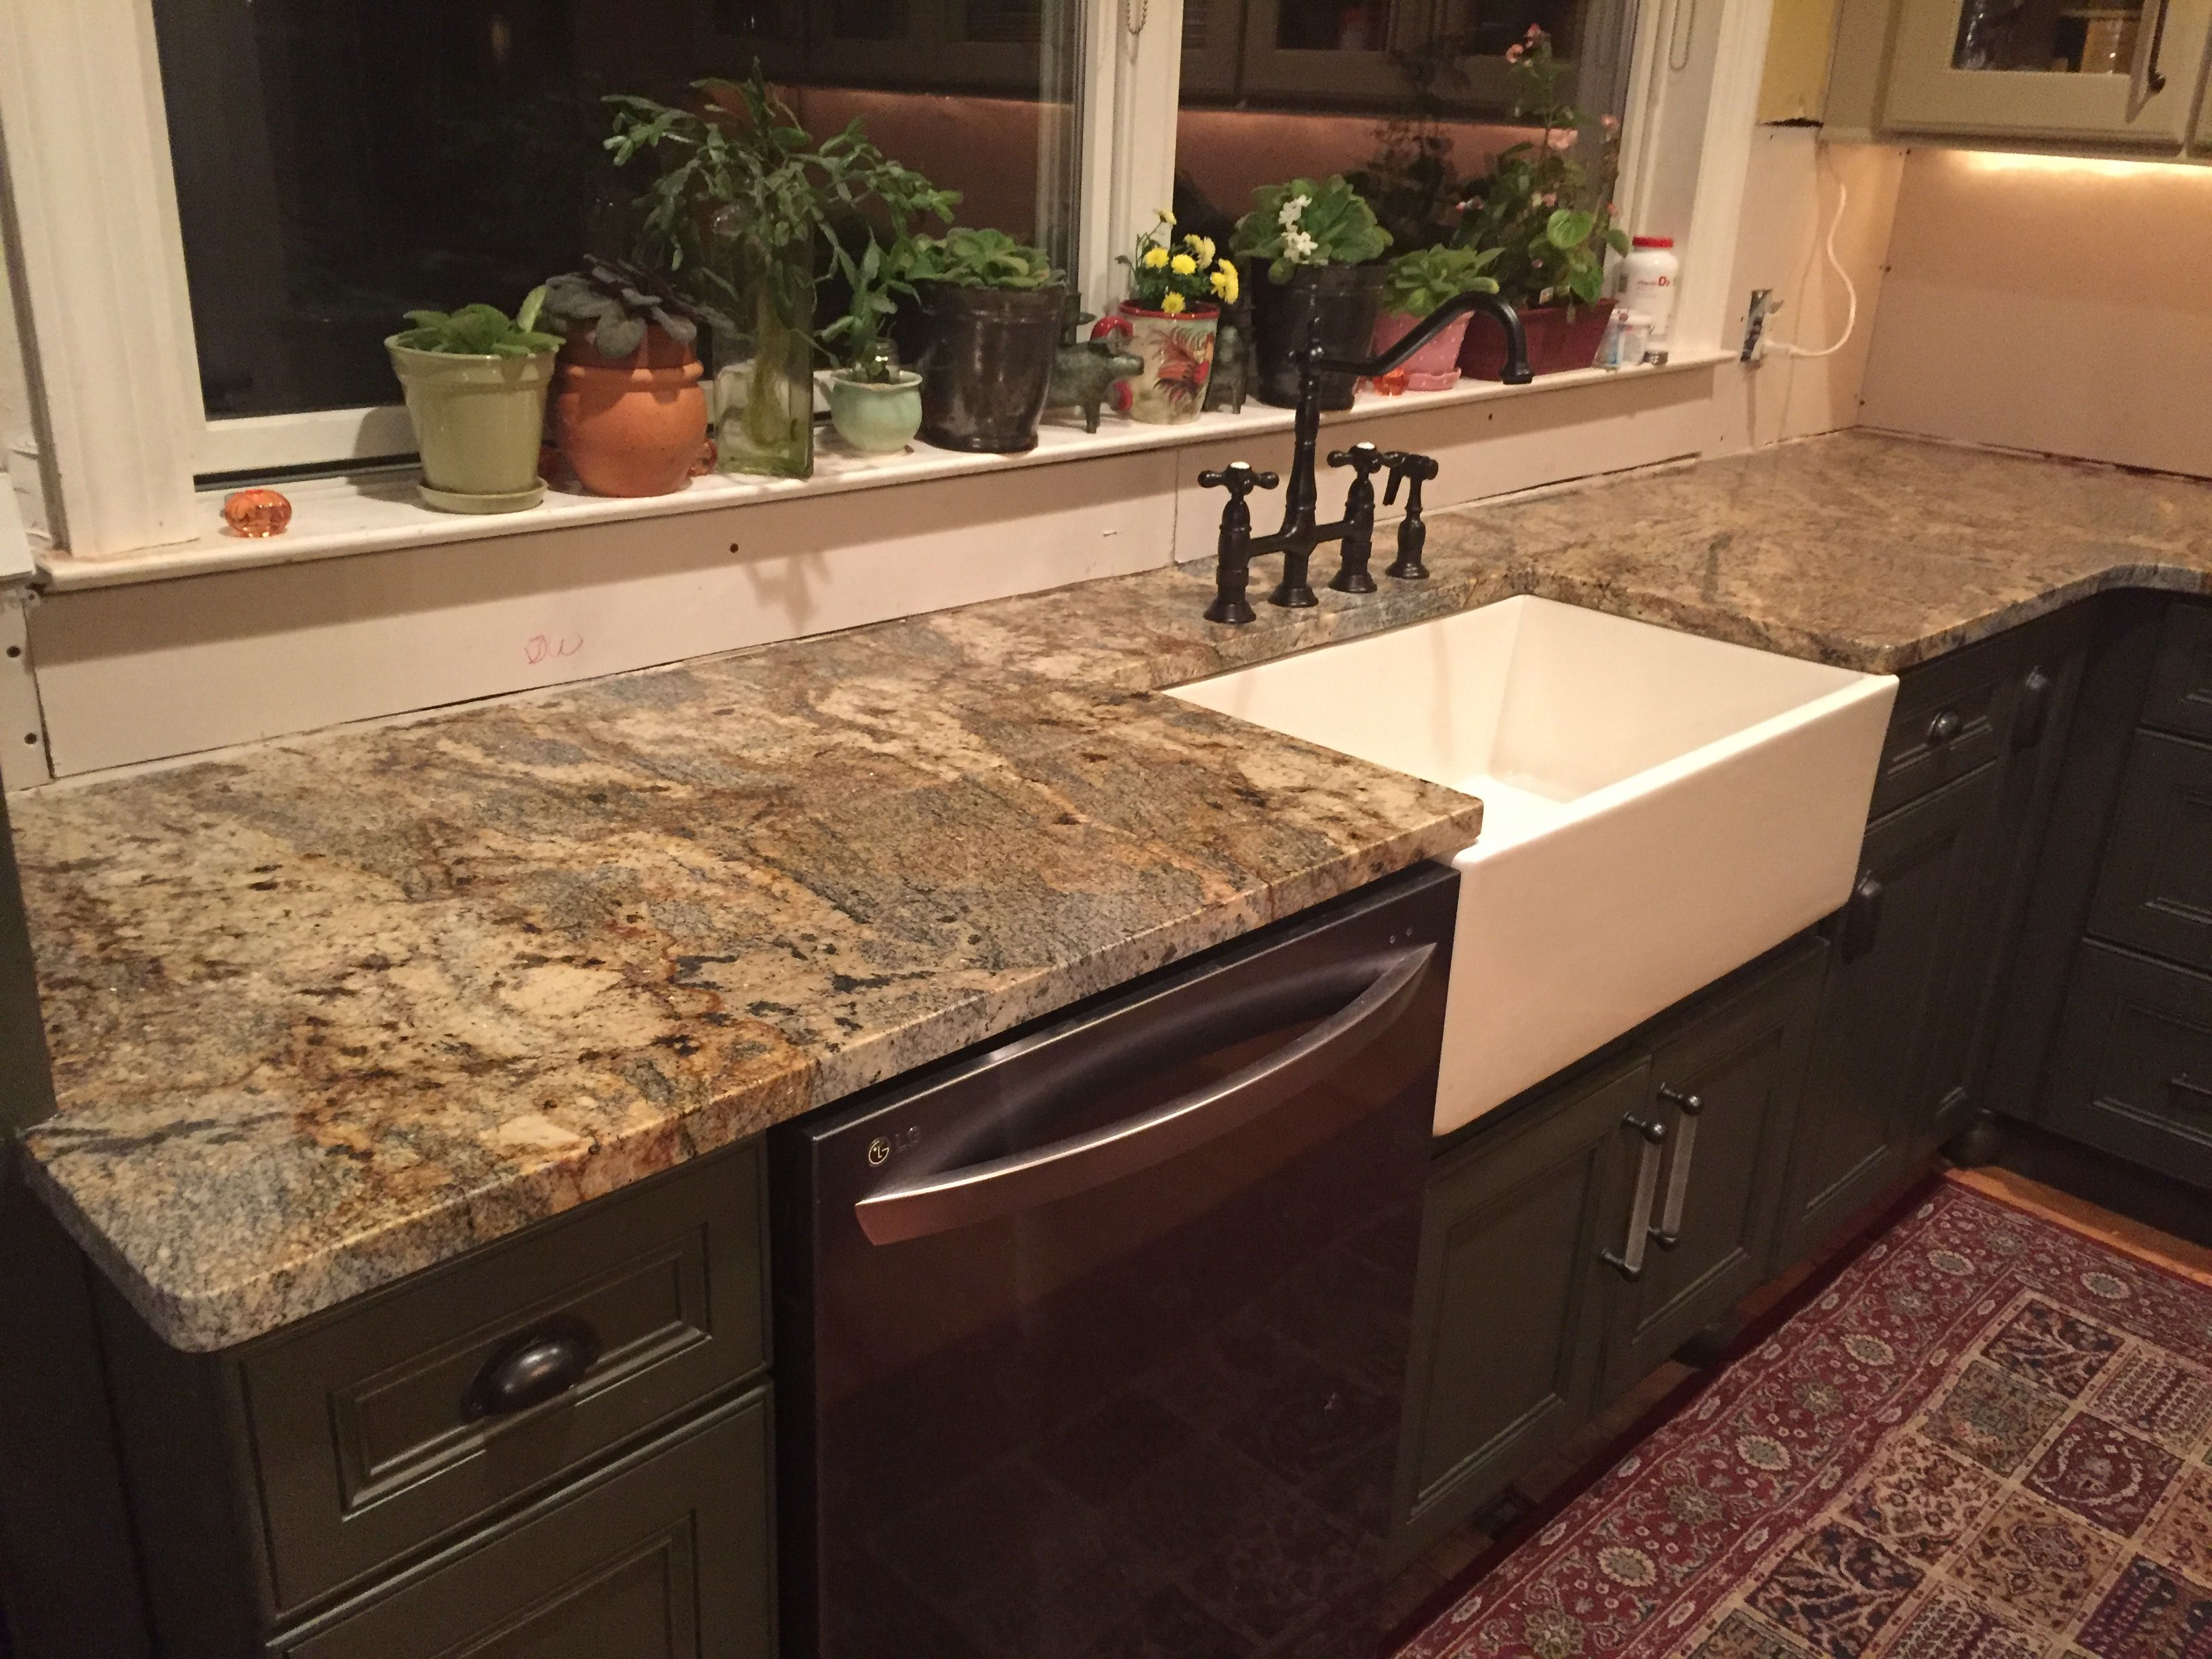 New granite countertop lapidus gold lowe 39 s sensa lowes for Lowes countertops